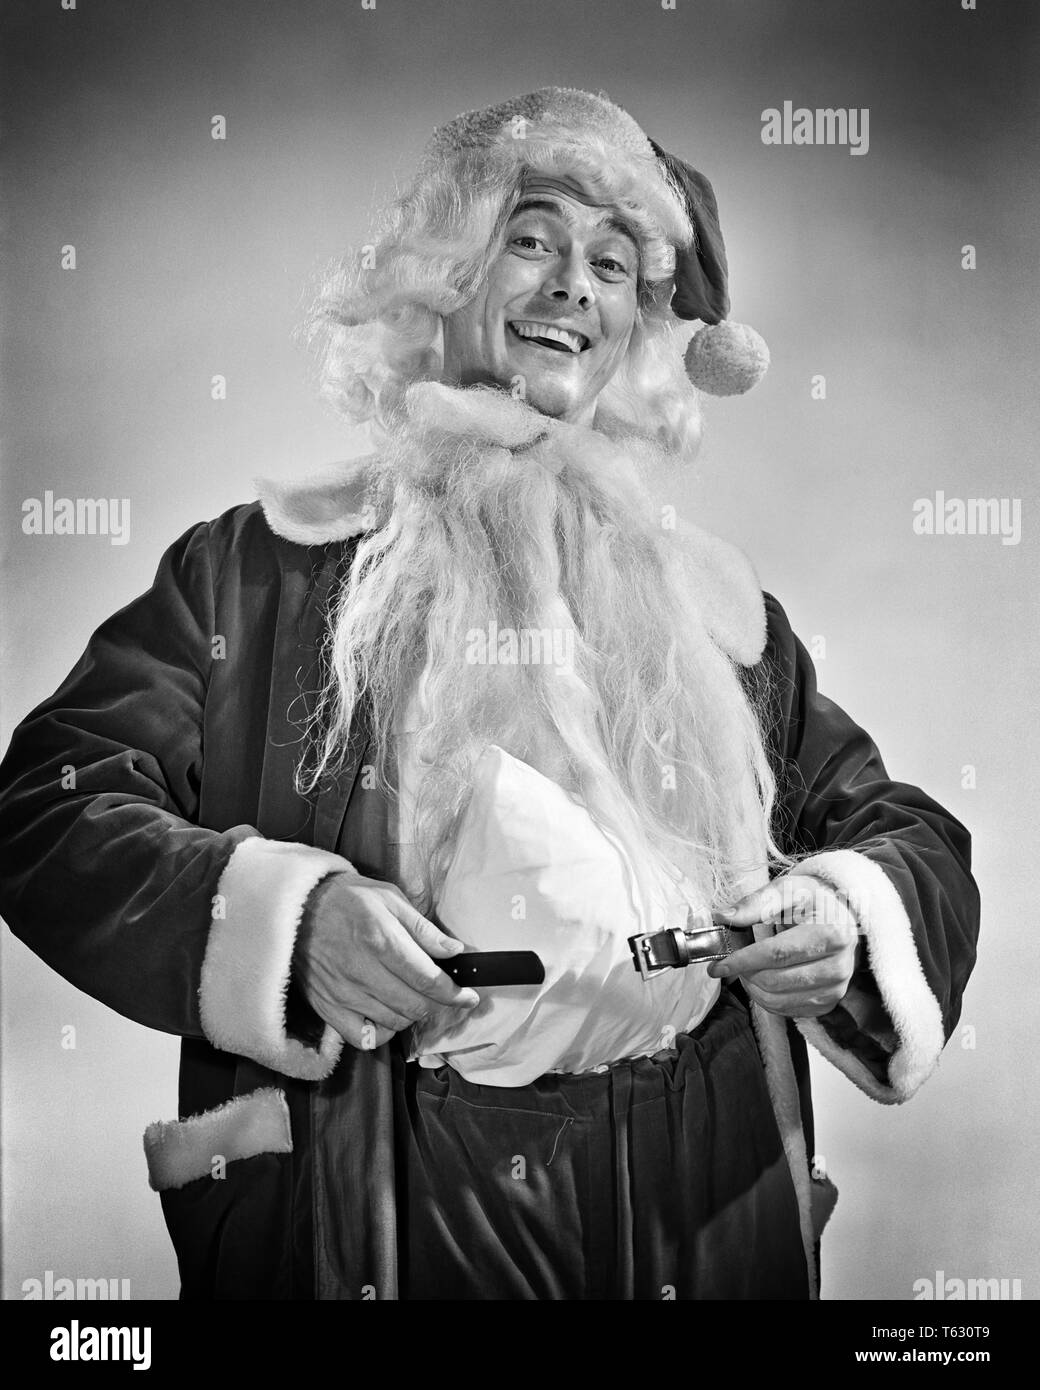 1950s SMILING MAN DRESSING UP IN SANTA COSTUME HOLDING BELT AROUND PADDED STOMACH  - x2535 RCH001 HARS BEARD 1 PEACE PLEASED JOY LIFESTYLE BELT CELEBRATION STUDIO SHOT GROWNUP CLAUS HOME LIFE COPY SPACE HALF-LENGTH ICON INSPIRATION WISE CHARACTER MALES SAINT B&W EYE CONTACT ICONS HAIRS OCCUPATION HAPPINESS CHEERFUL STOMACH WISDOM SYMBOLISM WHISKER CHARACTERS SPECIAL SANTA CLAUS OCCASION PEOPLE CHARACTERS SAINT NICHOLAS SAINT NICK SPECIAL OCCASION RED SUIT OLD SAINT NICK ROTUND UP FACIAL HAIR HOLIDAYS OCCUPATIONS SMILES STOUT DECEMBER HOLIDAY CHRISTMAS NICK SANTA'S HELPER DECEMBER 25 WHITE FUR - Stock Image